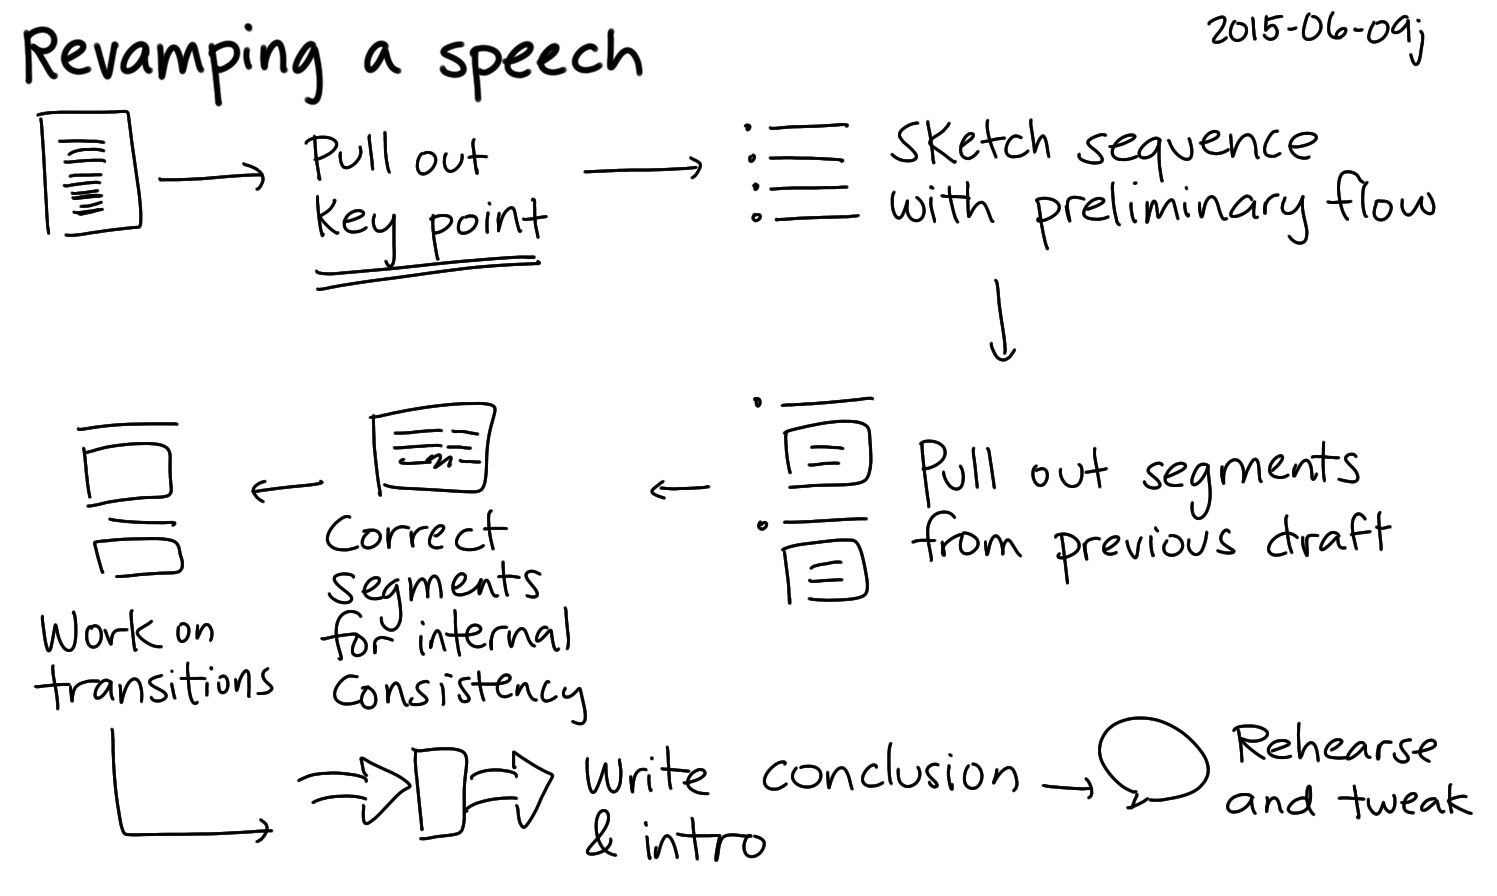 2015-06-09j Revamping a speech -- index card #editing #presentation #speaking #schoolwork.png